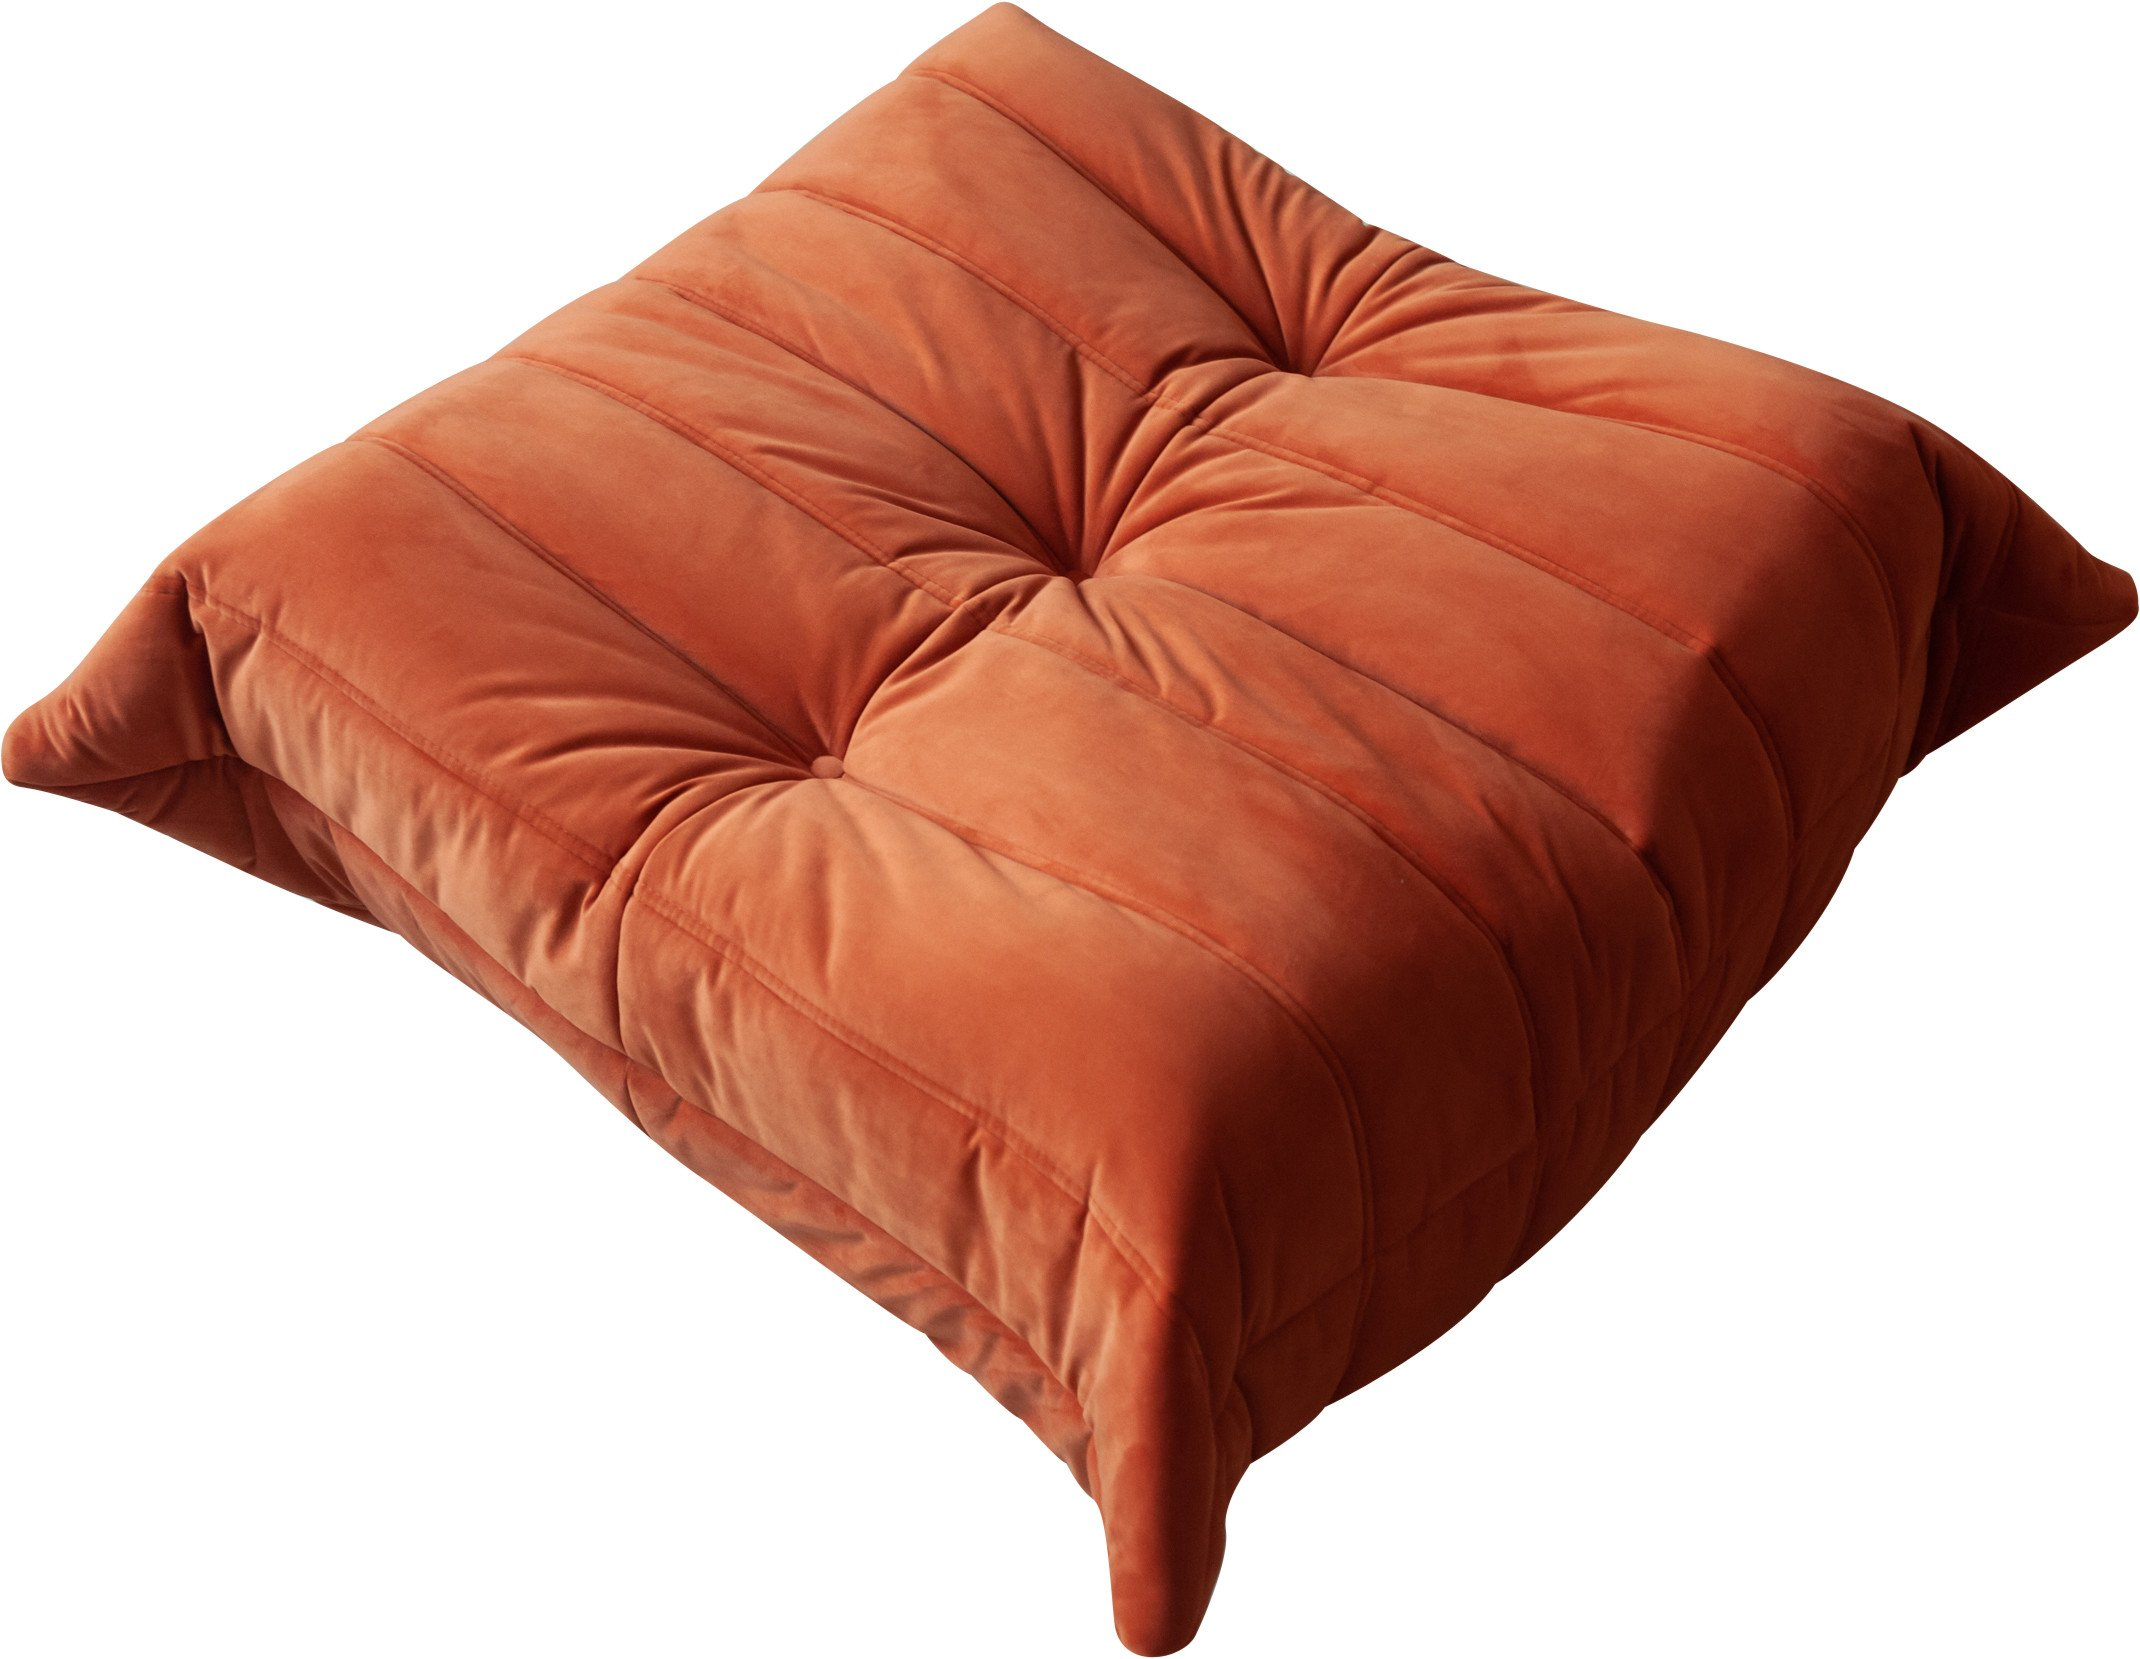 Velvet Orange Togo Pouf by M. Ducaroy of Ligne Roset, France, 1970s